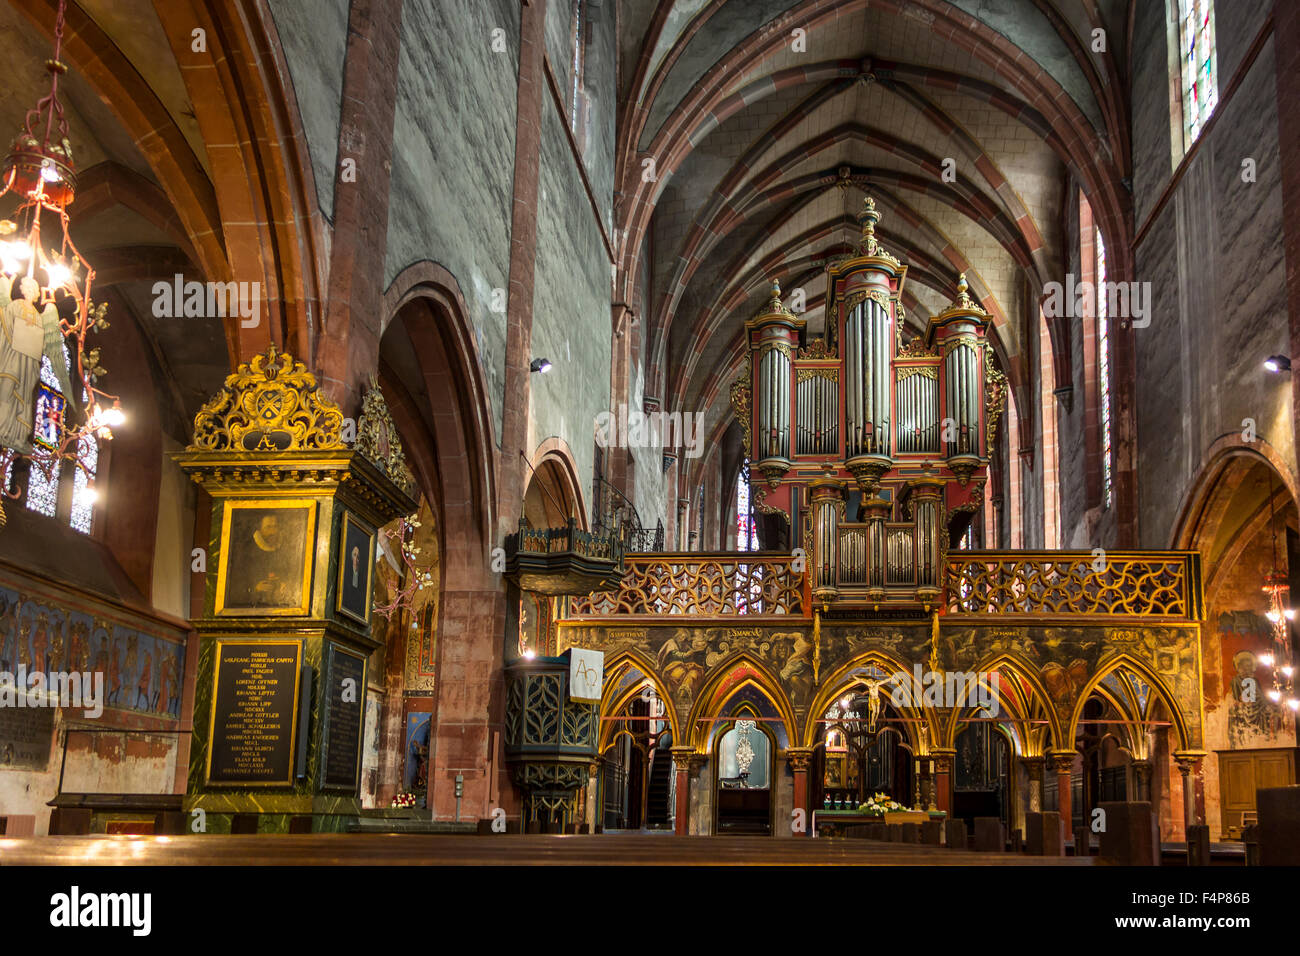 Choir screen  / rood screen and pipe organ of the Saint-Pierre-le-Jeune Protestant Church in Strasbourg, Alsace, Stock Photo